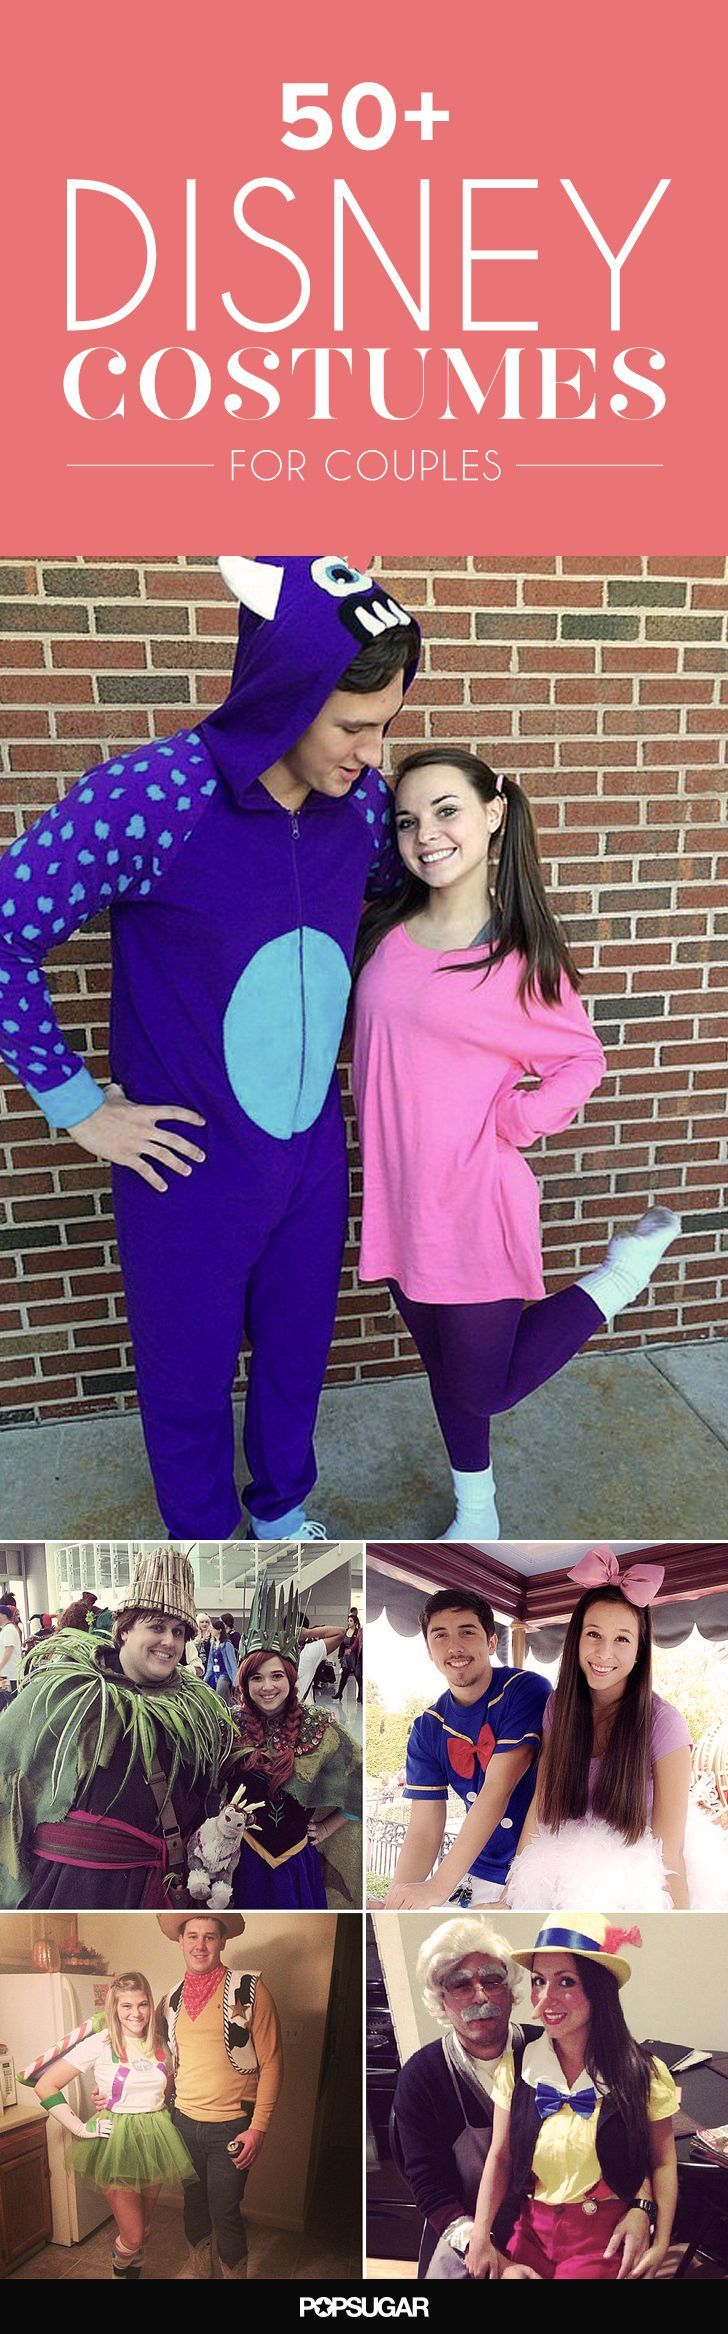 These 50+ Disney Couples Costumes Will Make Your Halloween